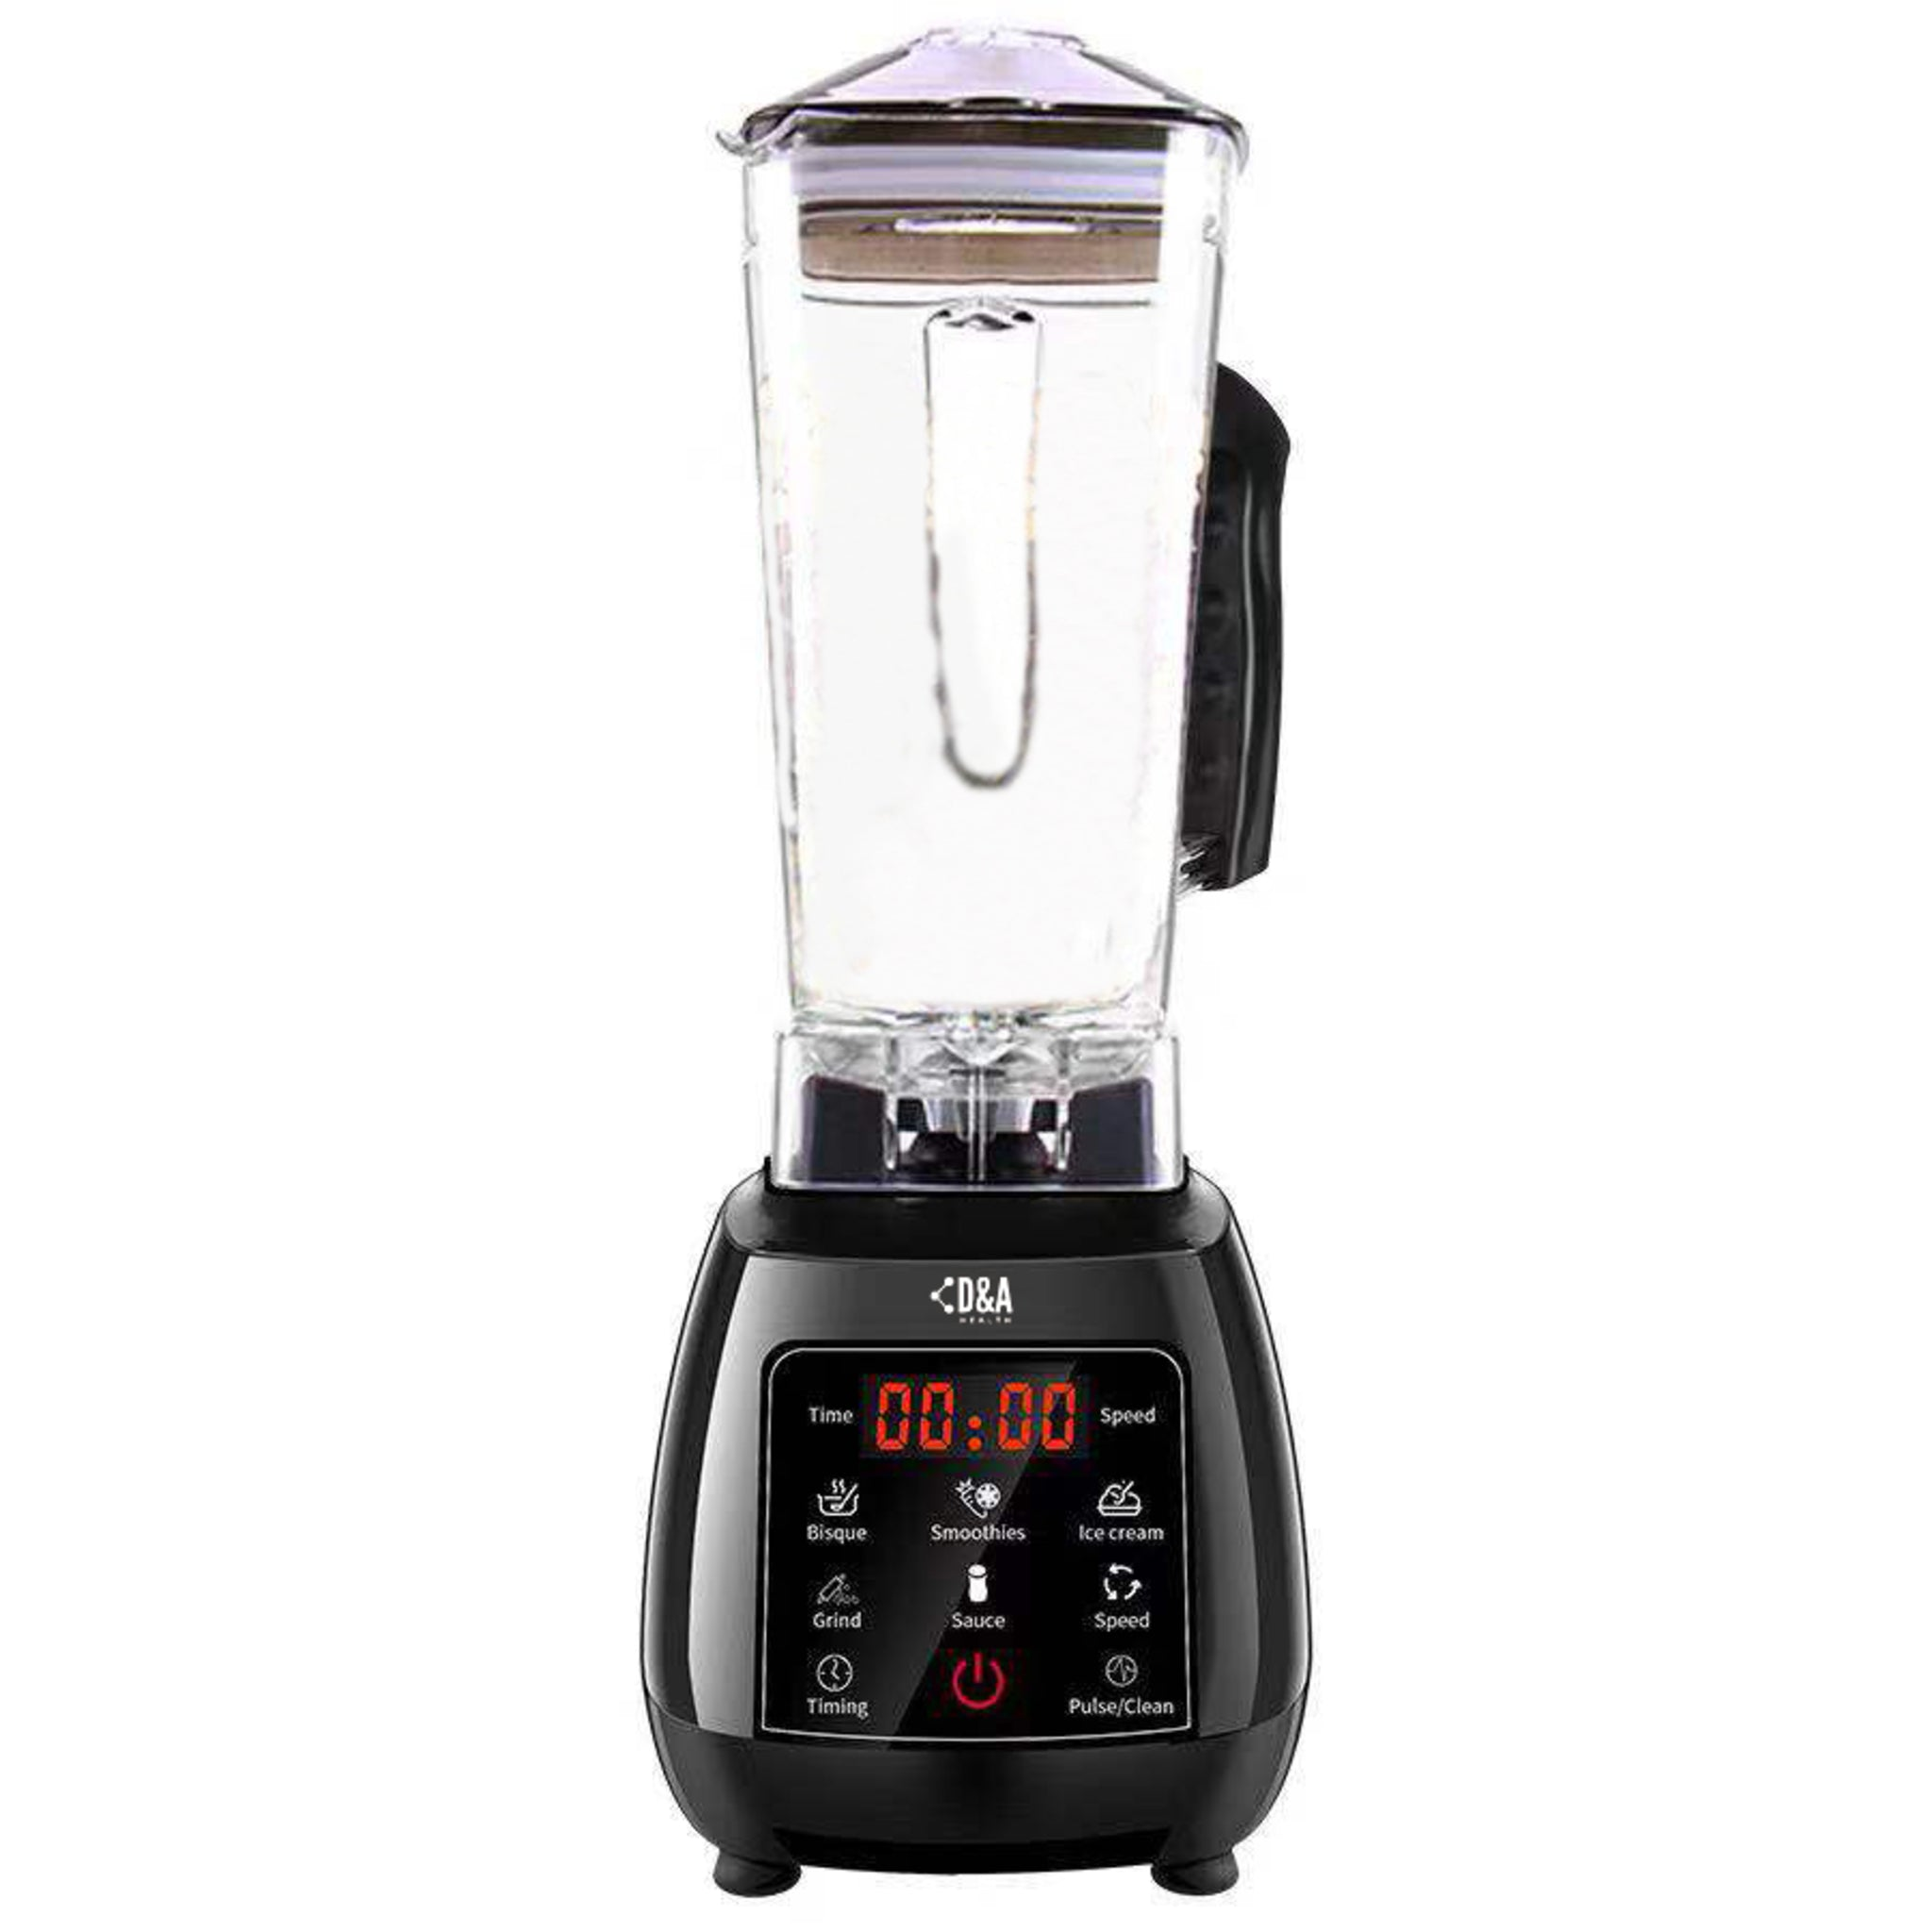 D&A HEALTH - ULTIMATE TOUCHPAD BLENDER - 2,200W & 2,000ML JUG